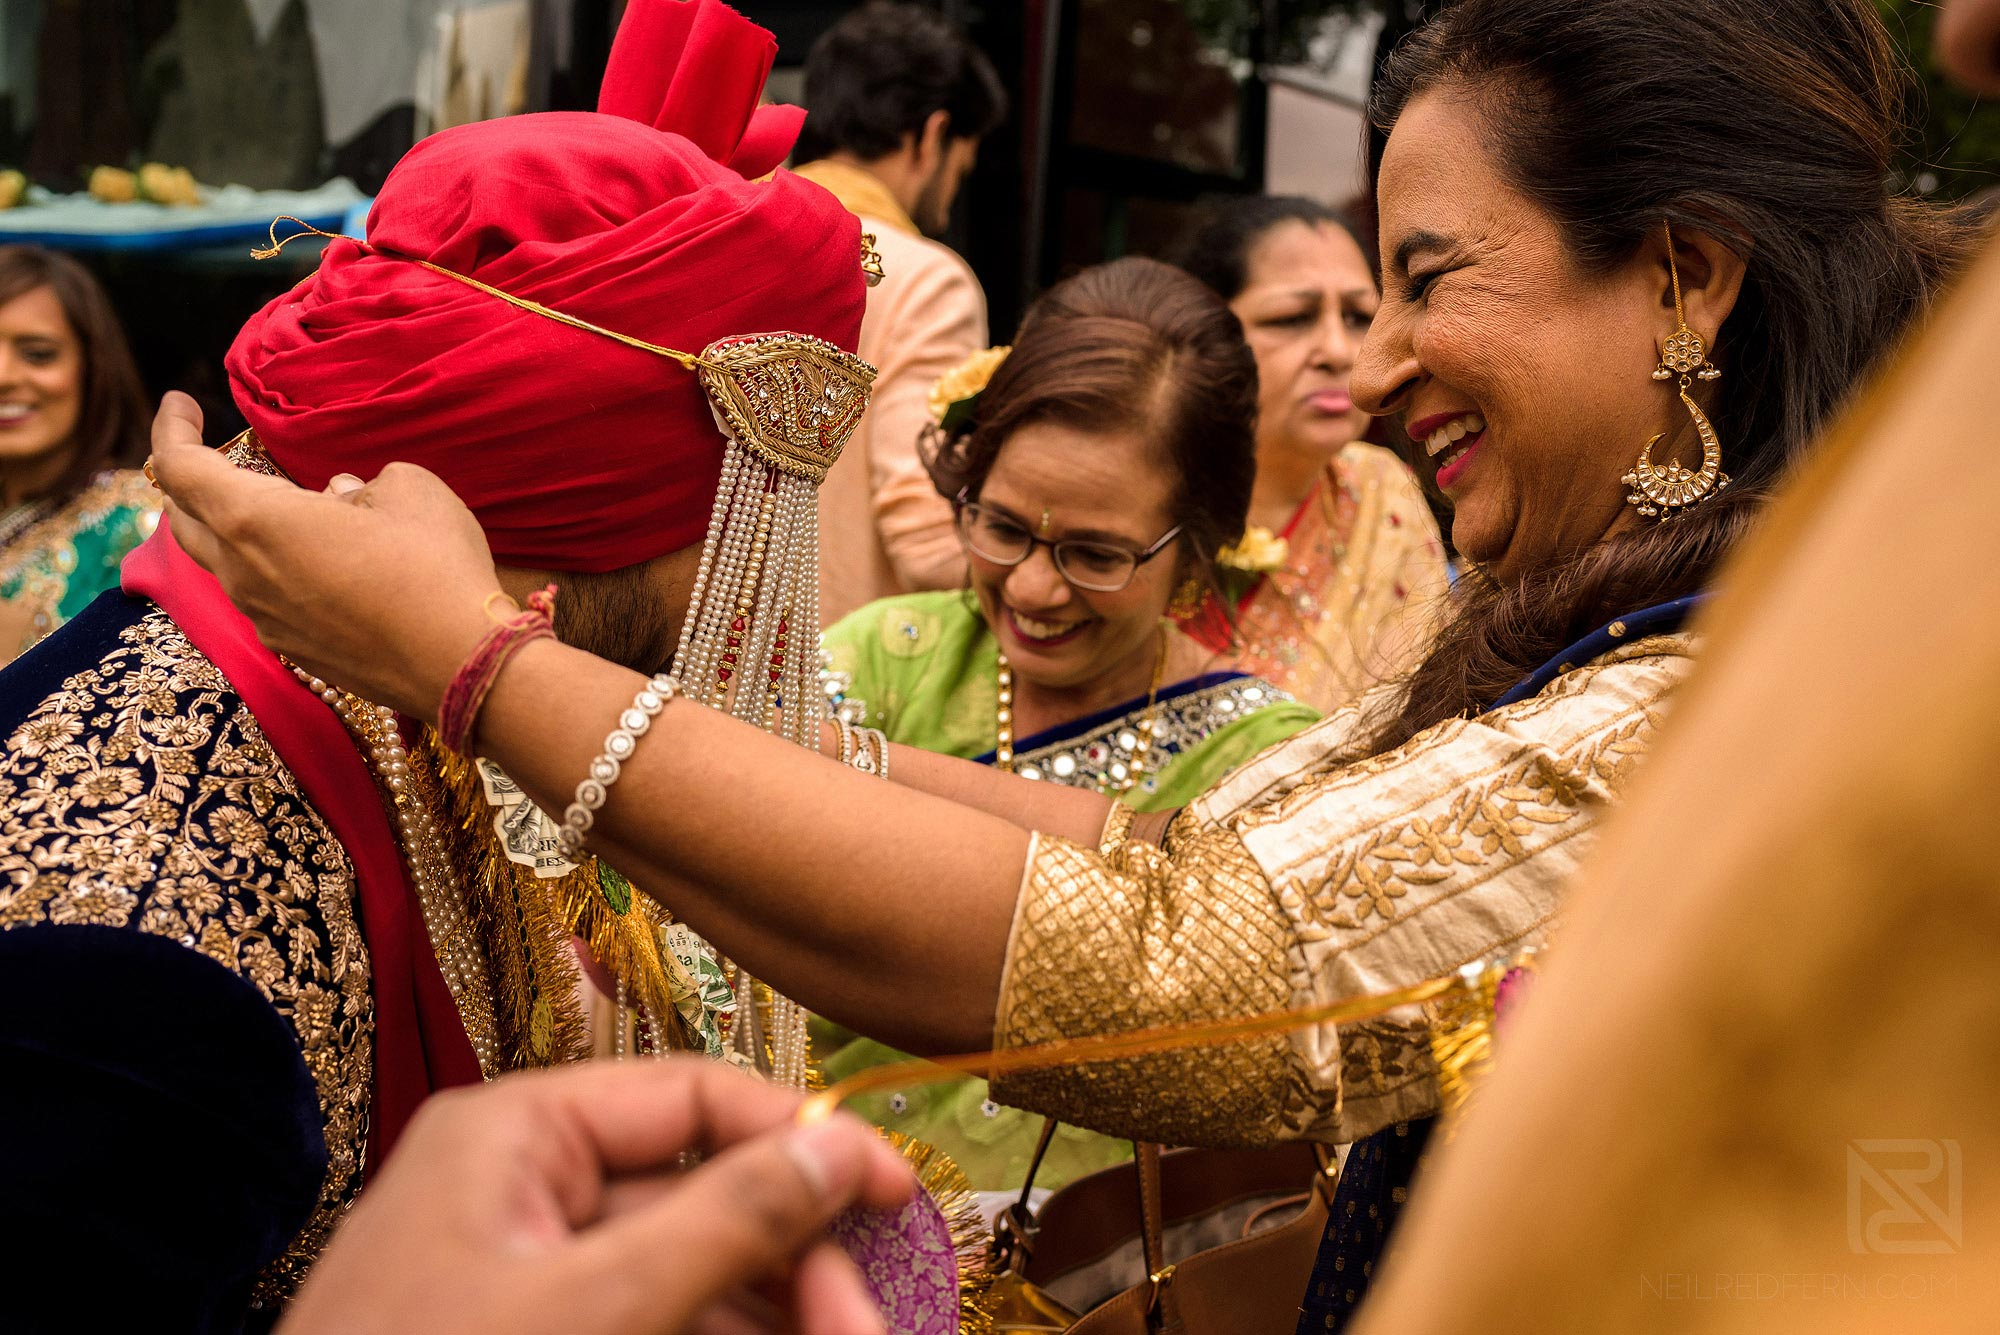 beautiful moment during Indian wedding